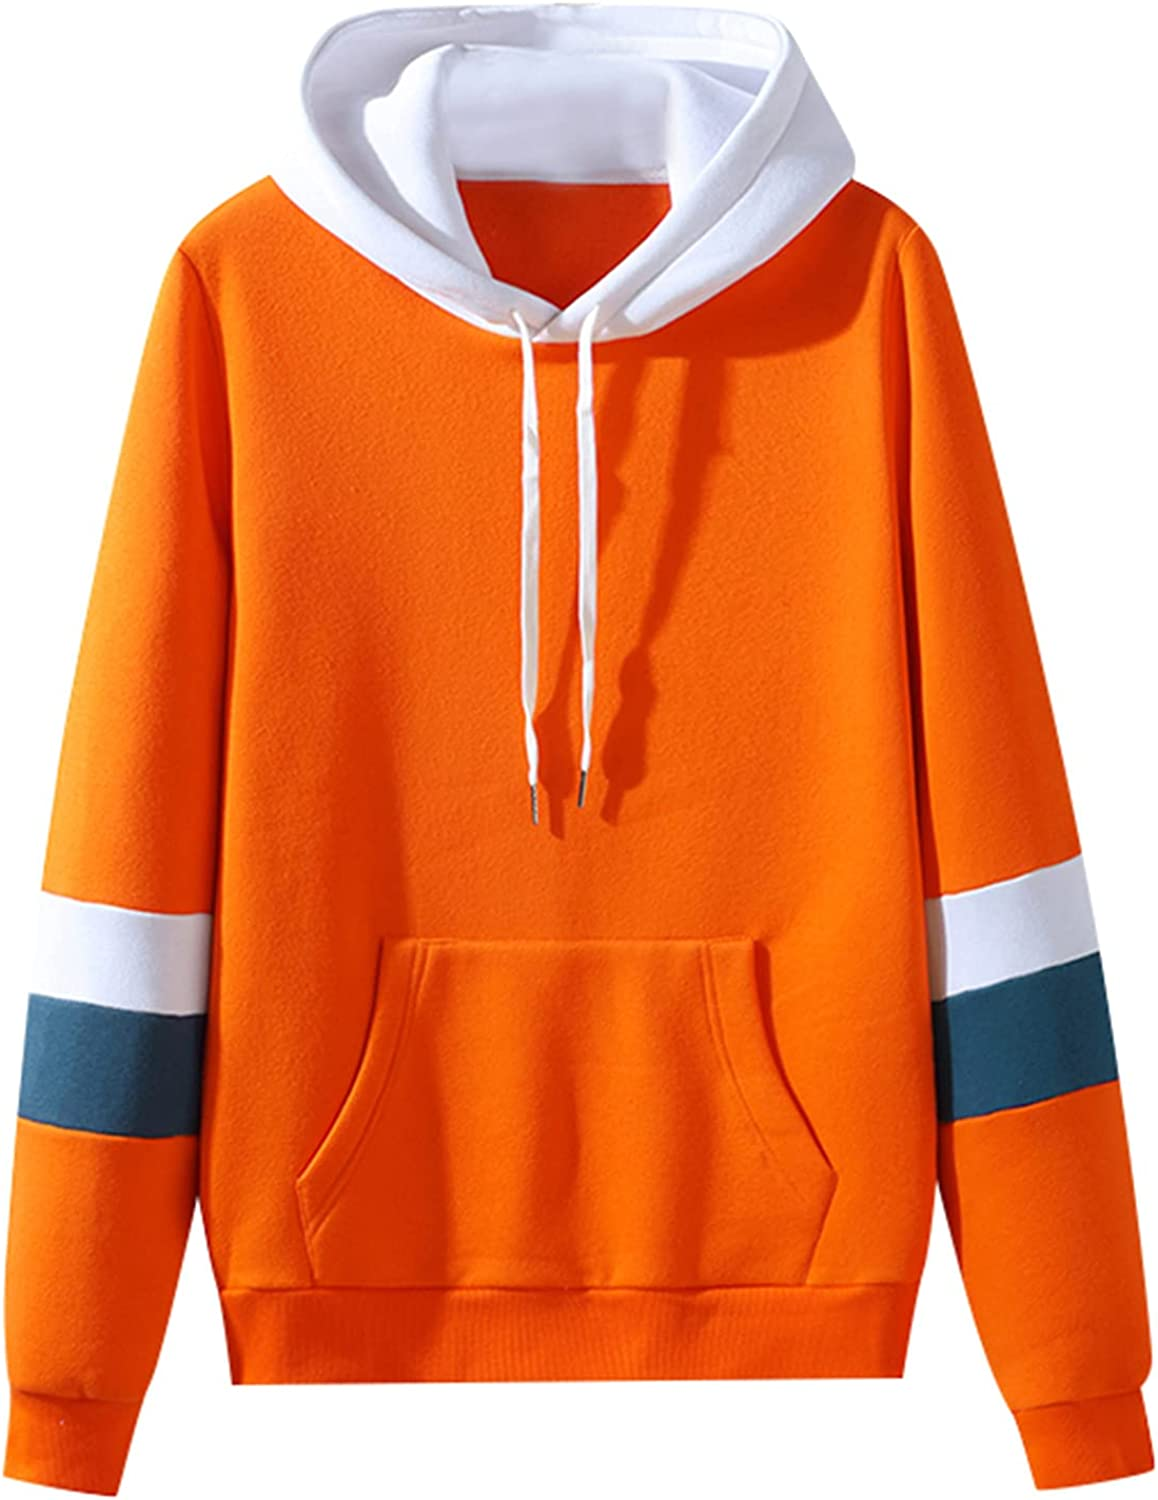 Huangse Men's Autumn Sweatshirt with Hood Casual Sports Jacket Sweater Fashion Patchwork Sports Long Sleeves Outdoor Coat